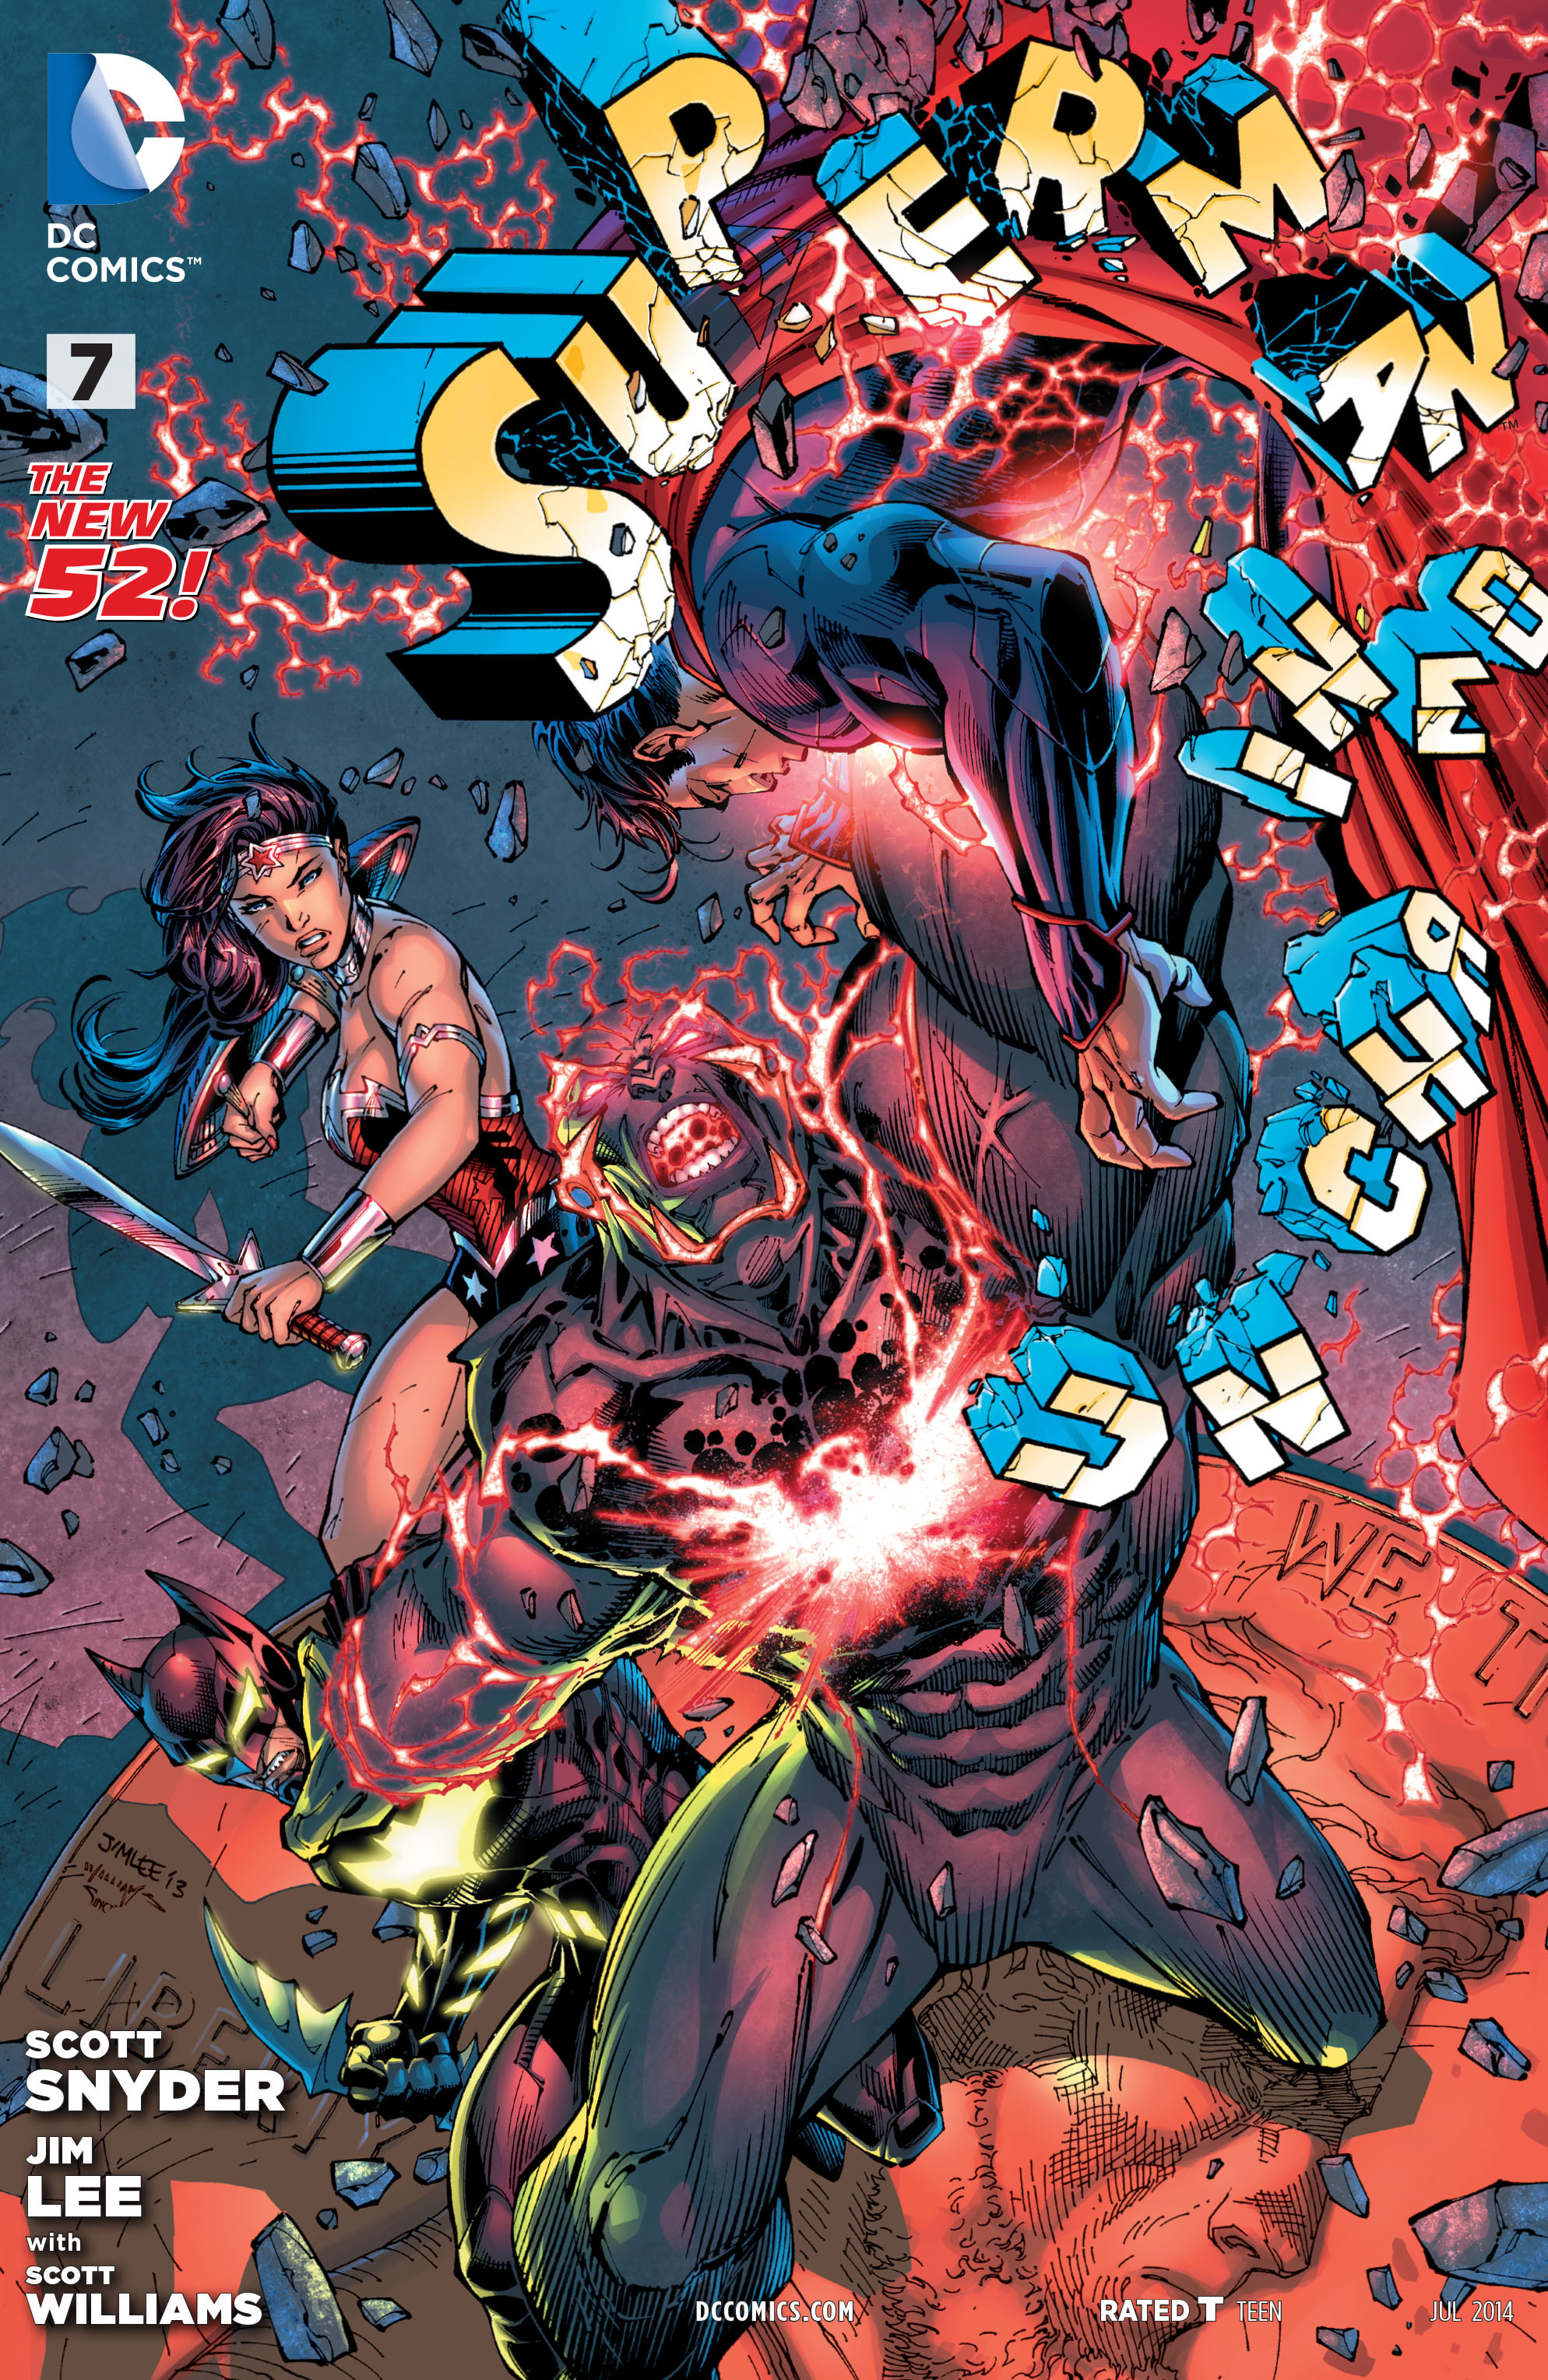 SUPERMAN UNCHAINED #7 - cover